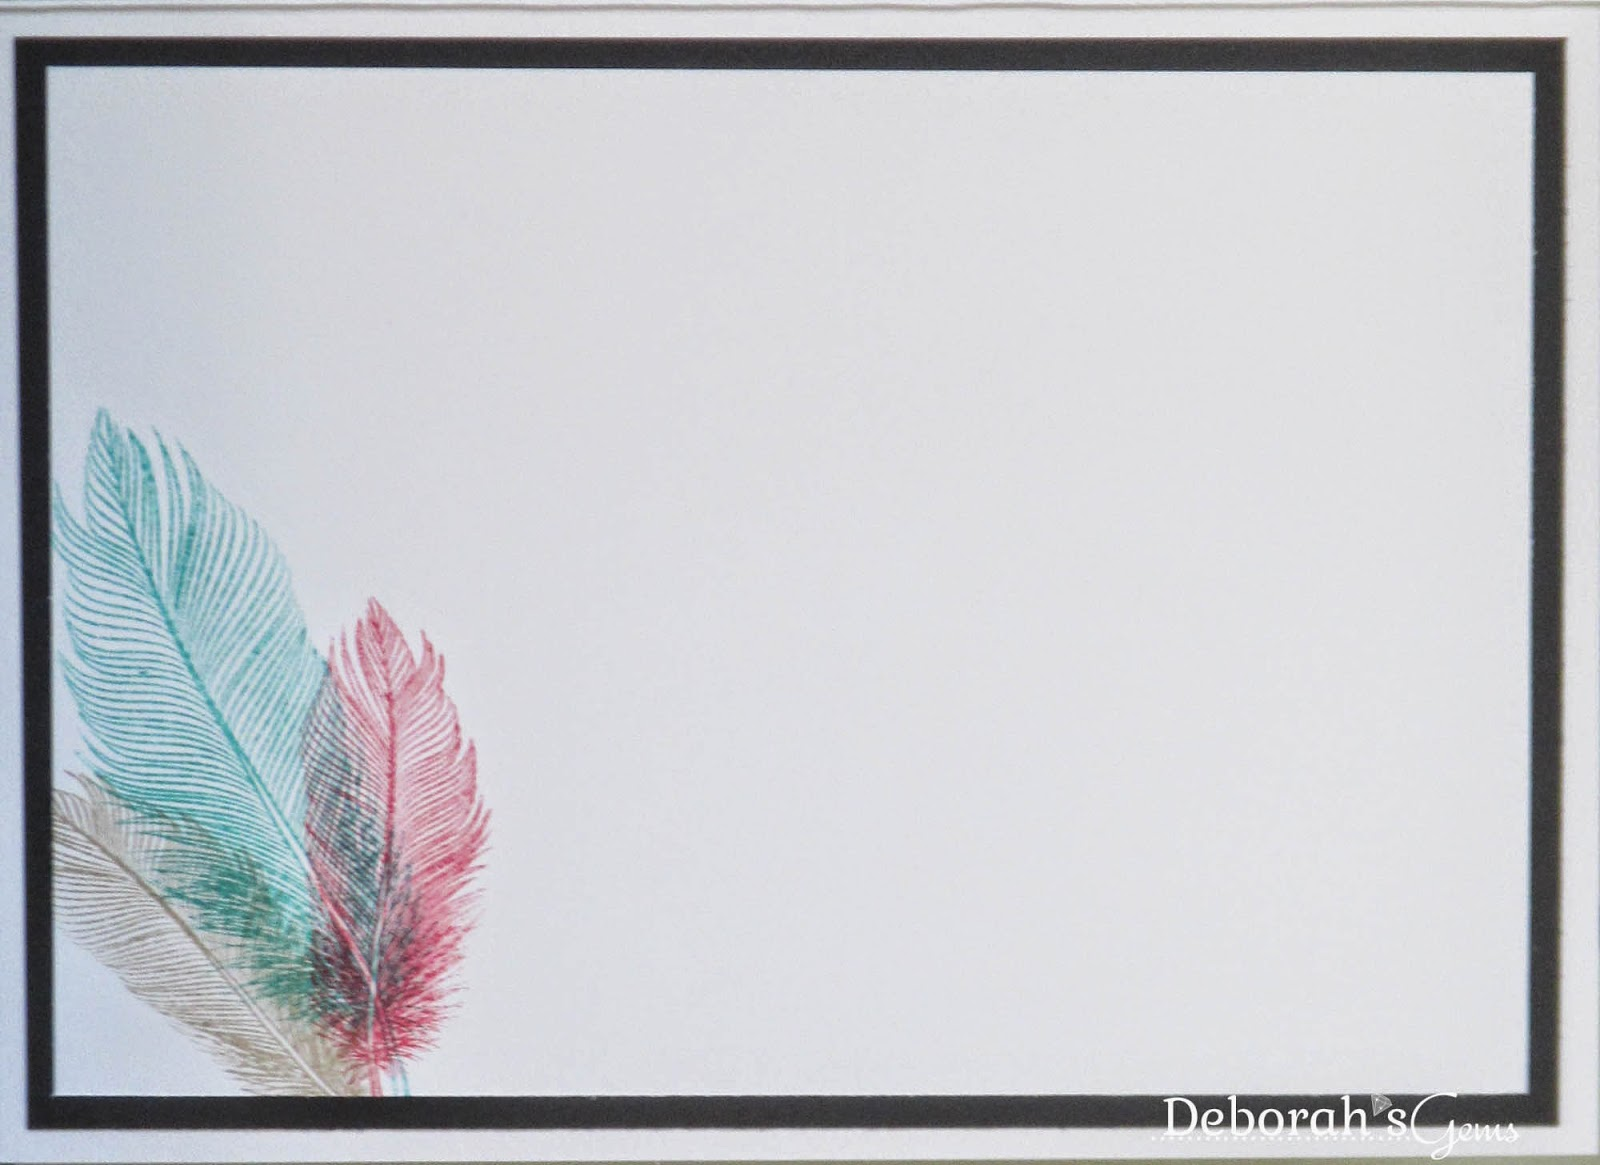 Fine Feathers inside - photo by Deborah Frings - Deborah's Gems